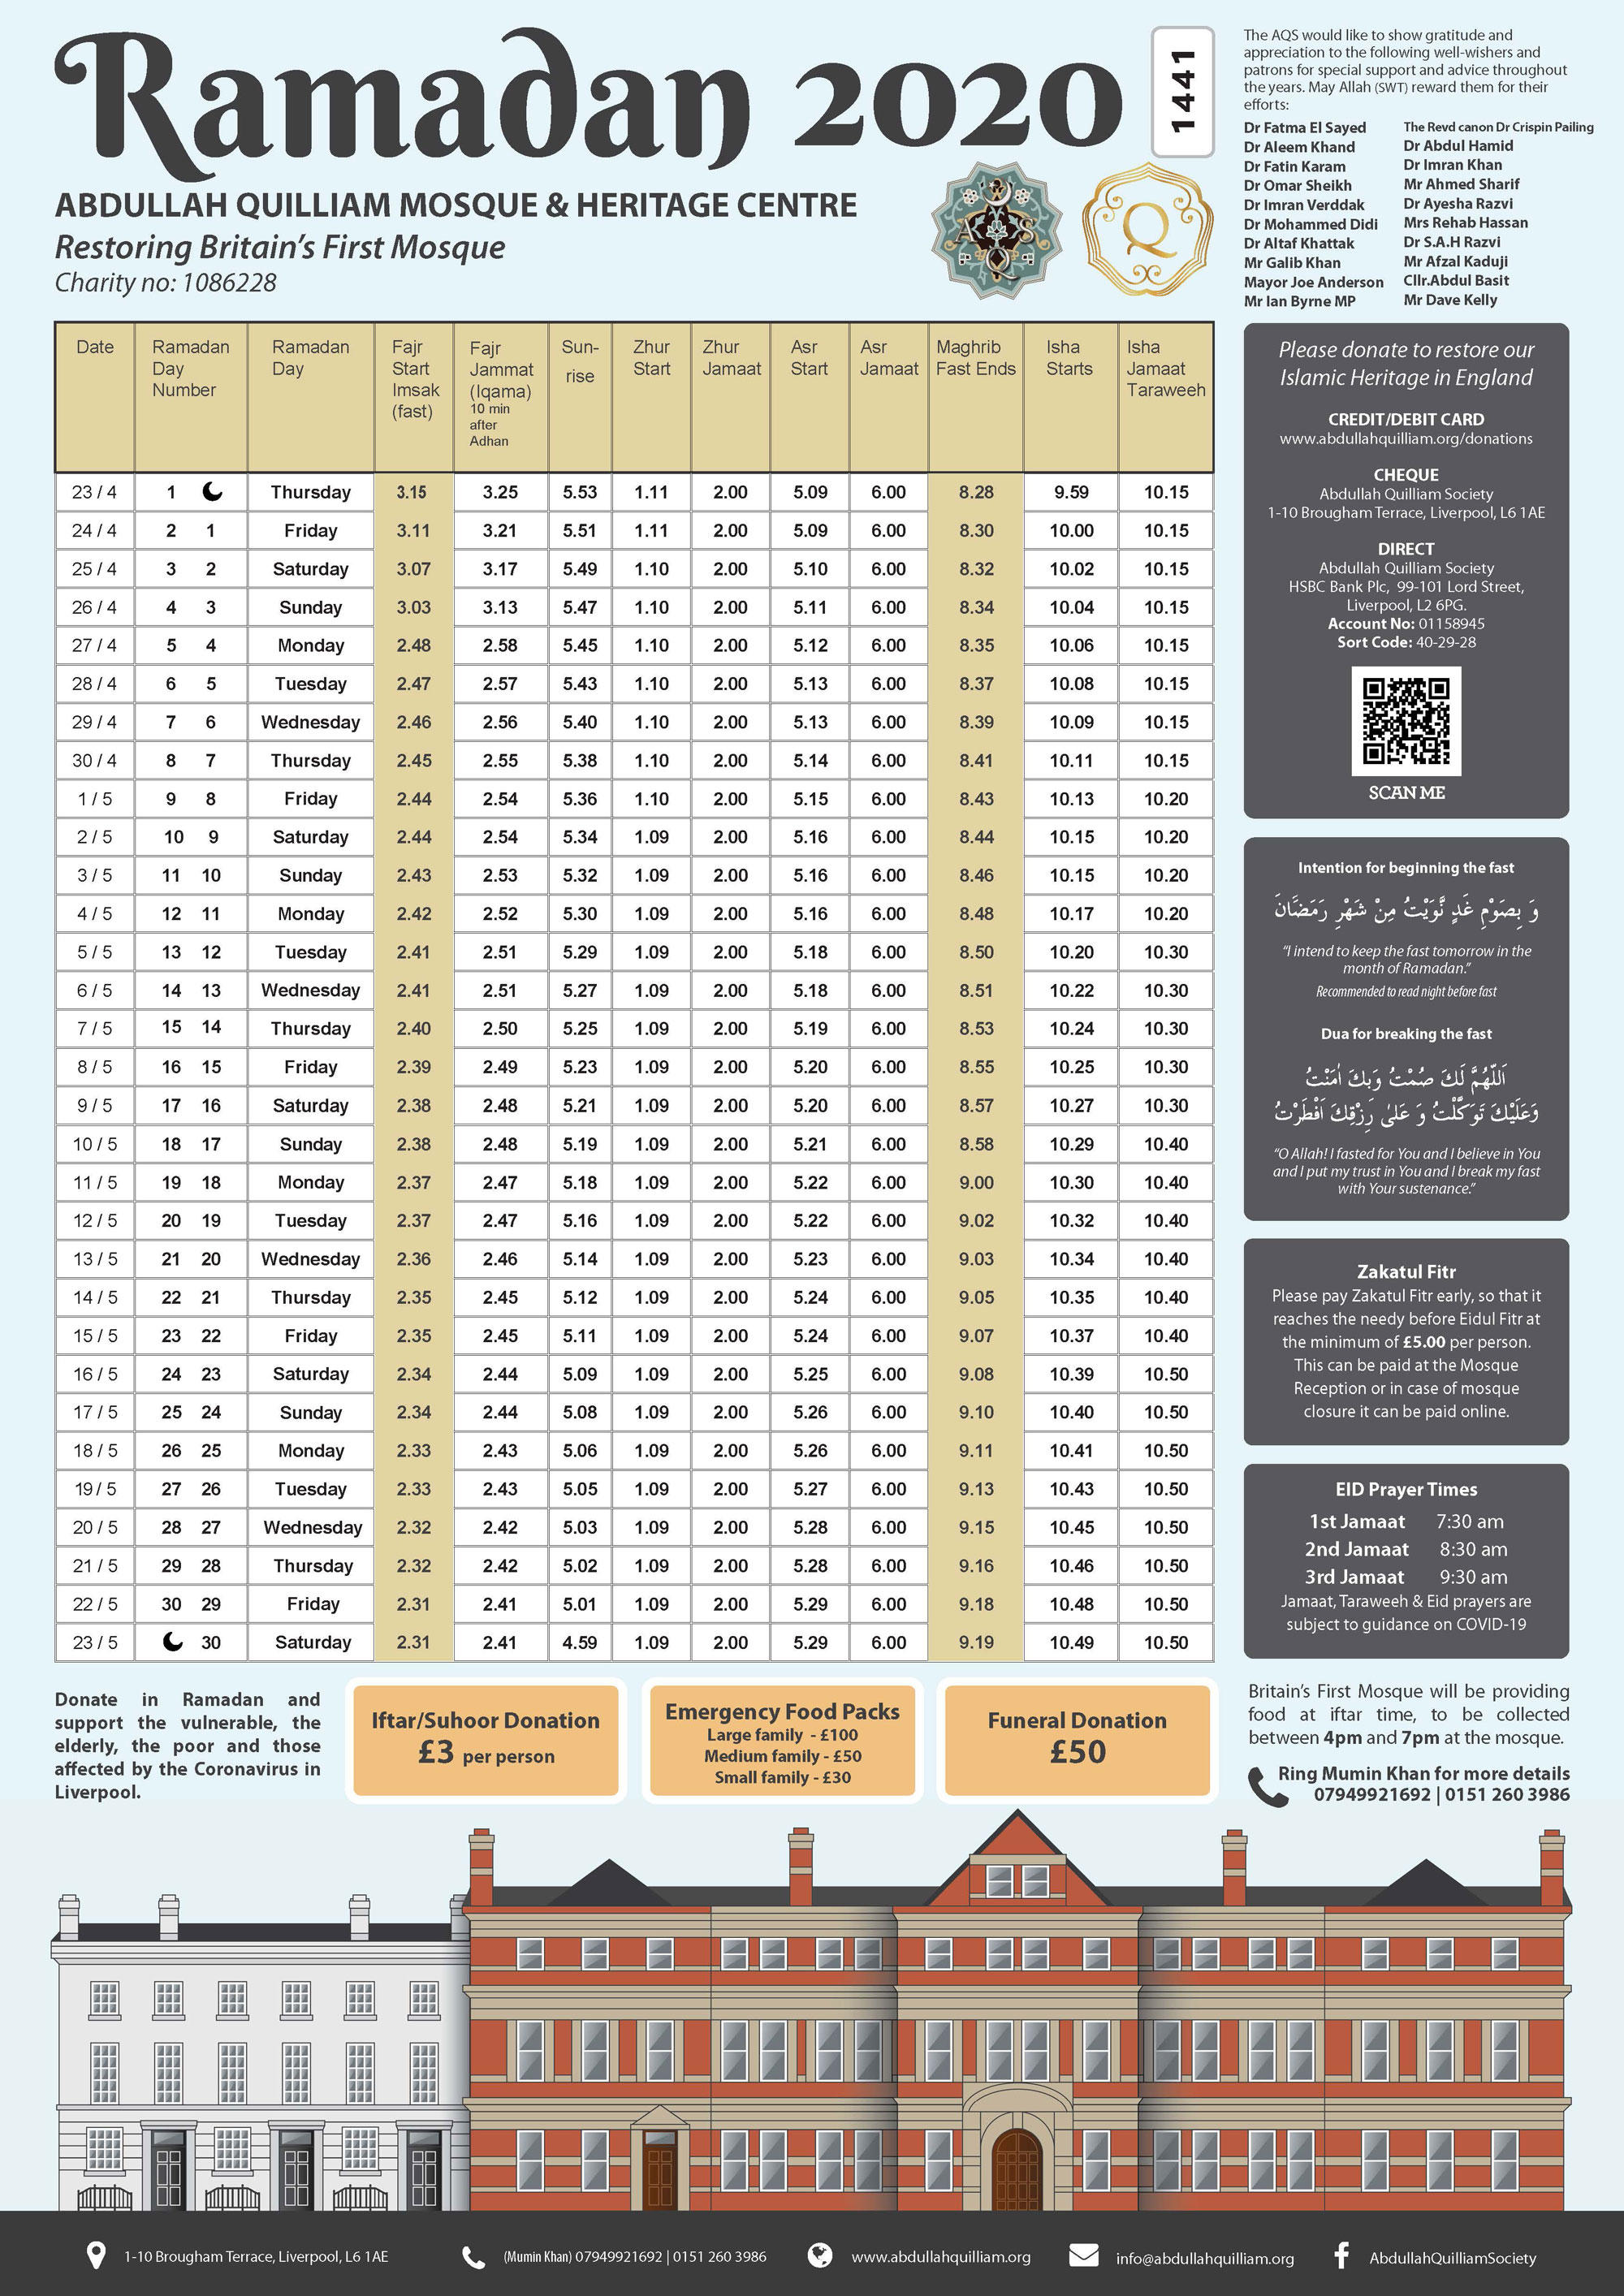 AQS-Ramadan-timetable-2020-web-post